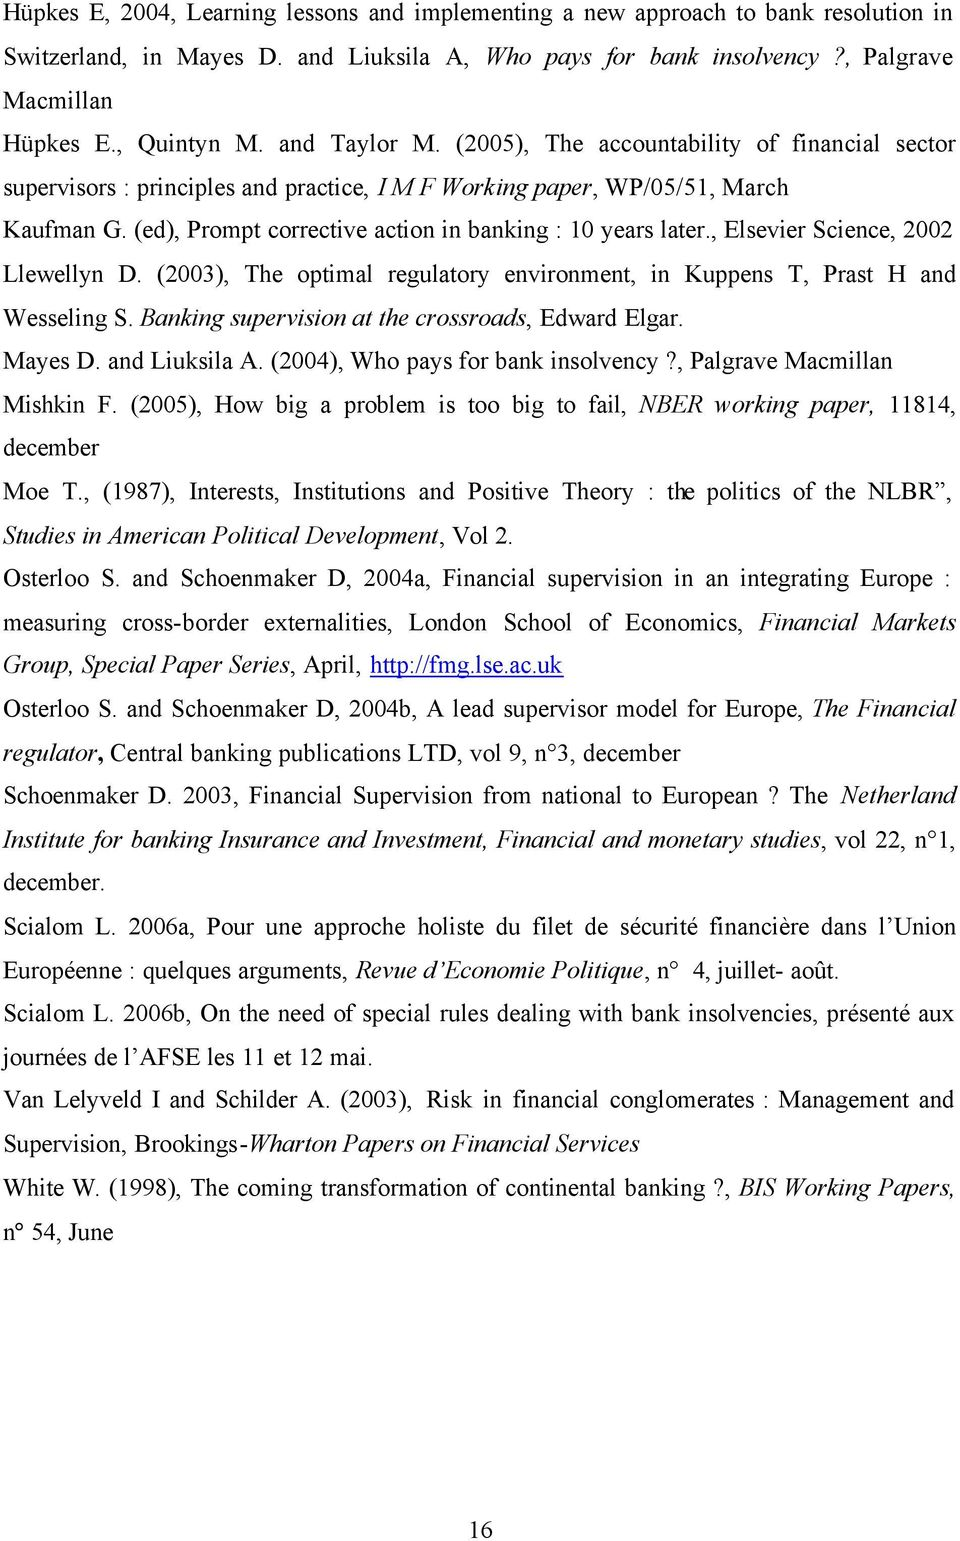 (ed), Prompt corrective action in banking : 10 years later., Elsevier Science, 2002 Llewellyn D. (2003), The optimal regulatory environment, in Kuppens T, Prast H and Wesseling S.